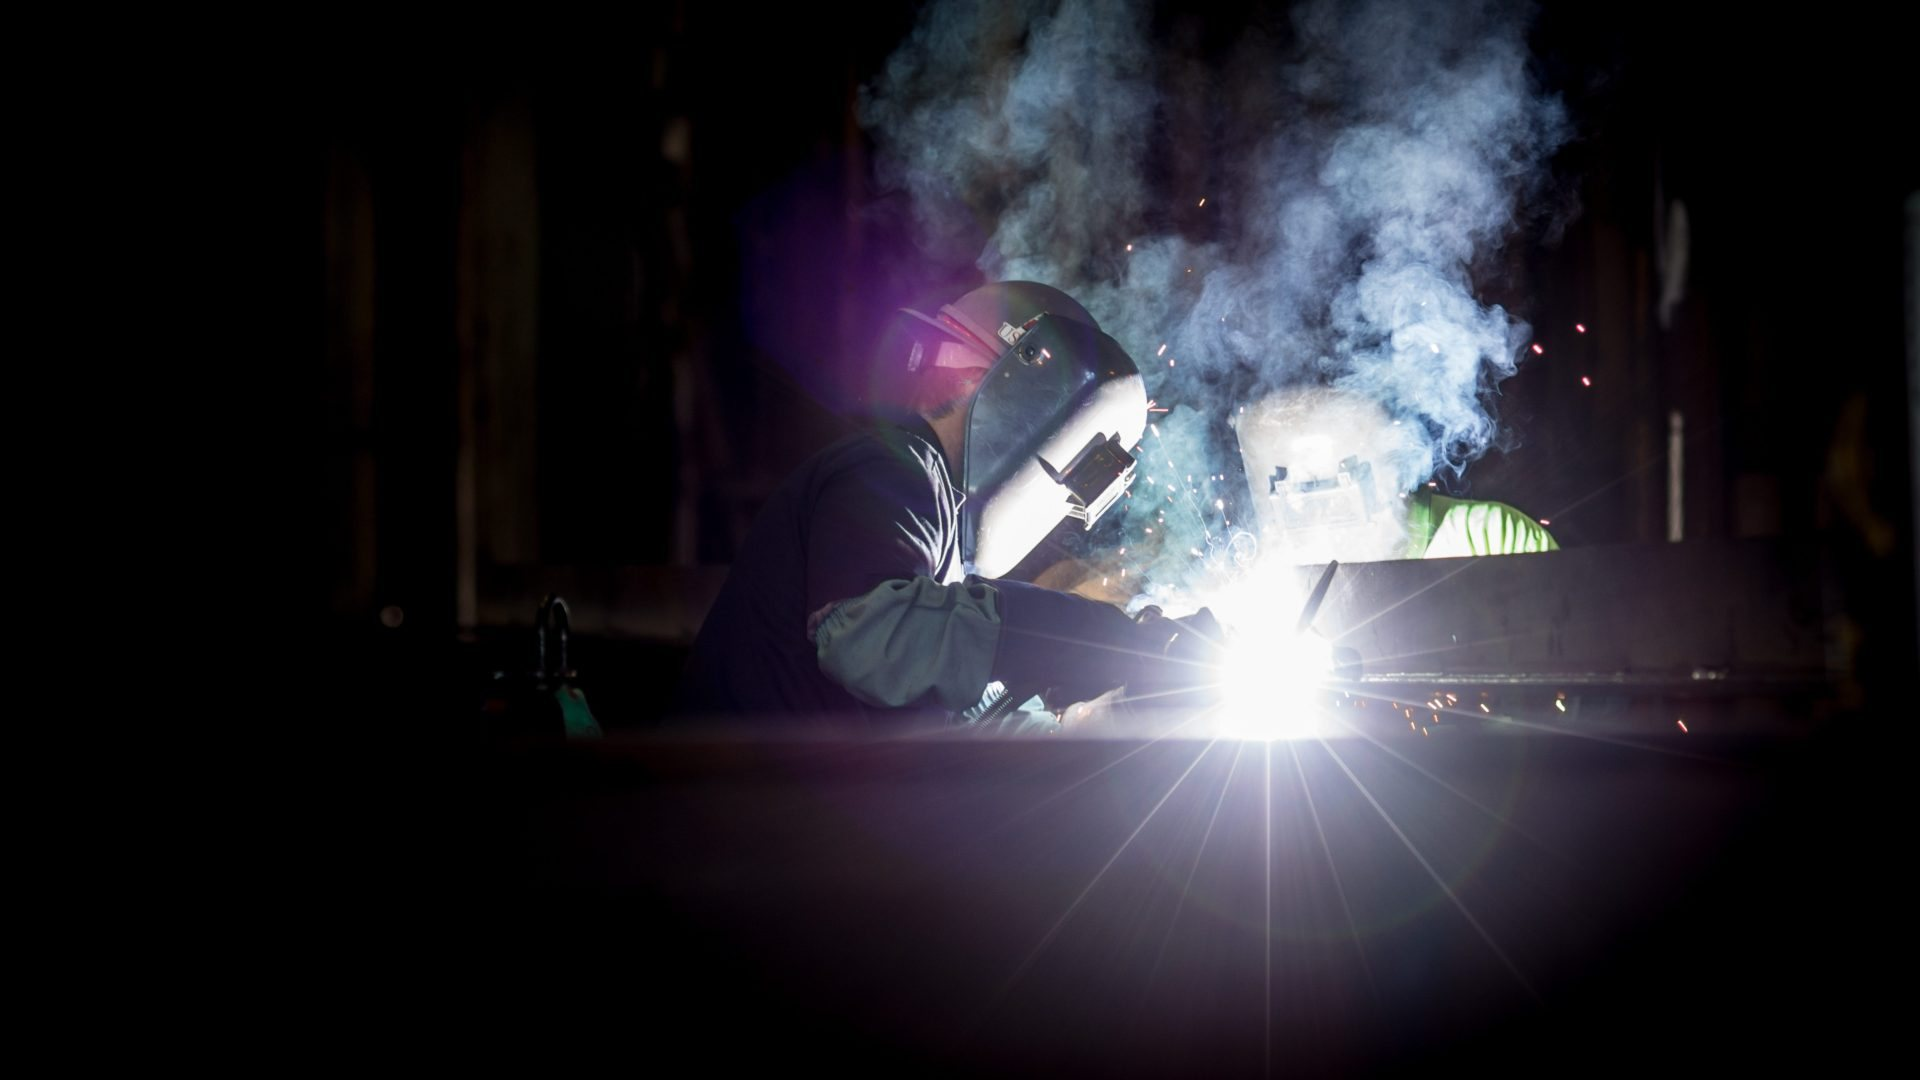 Steel welding image